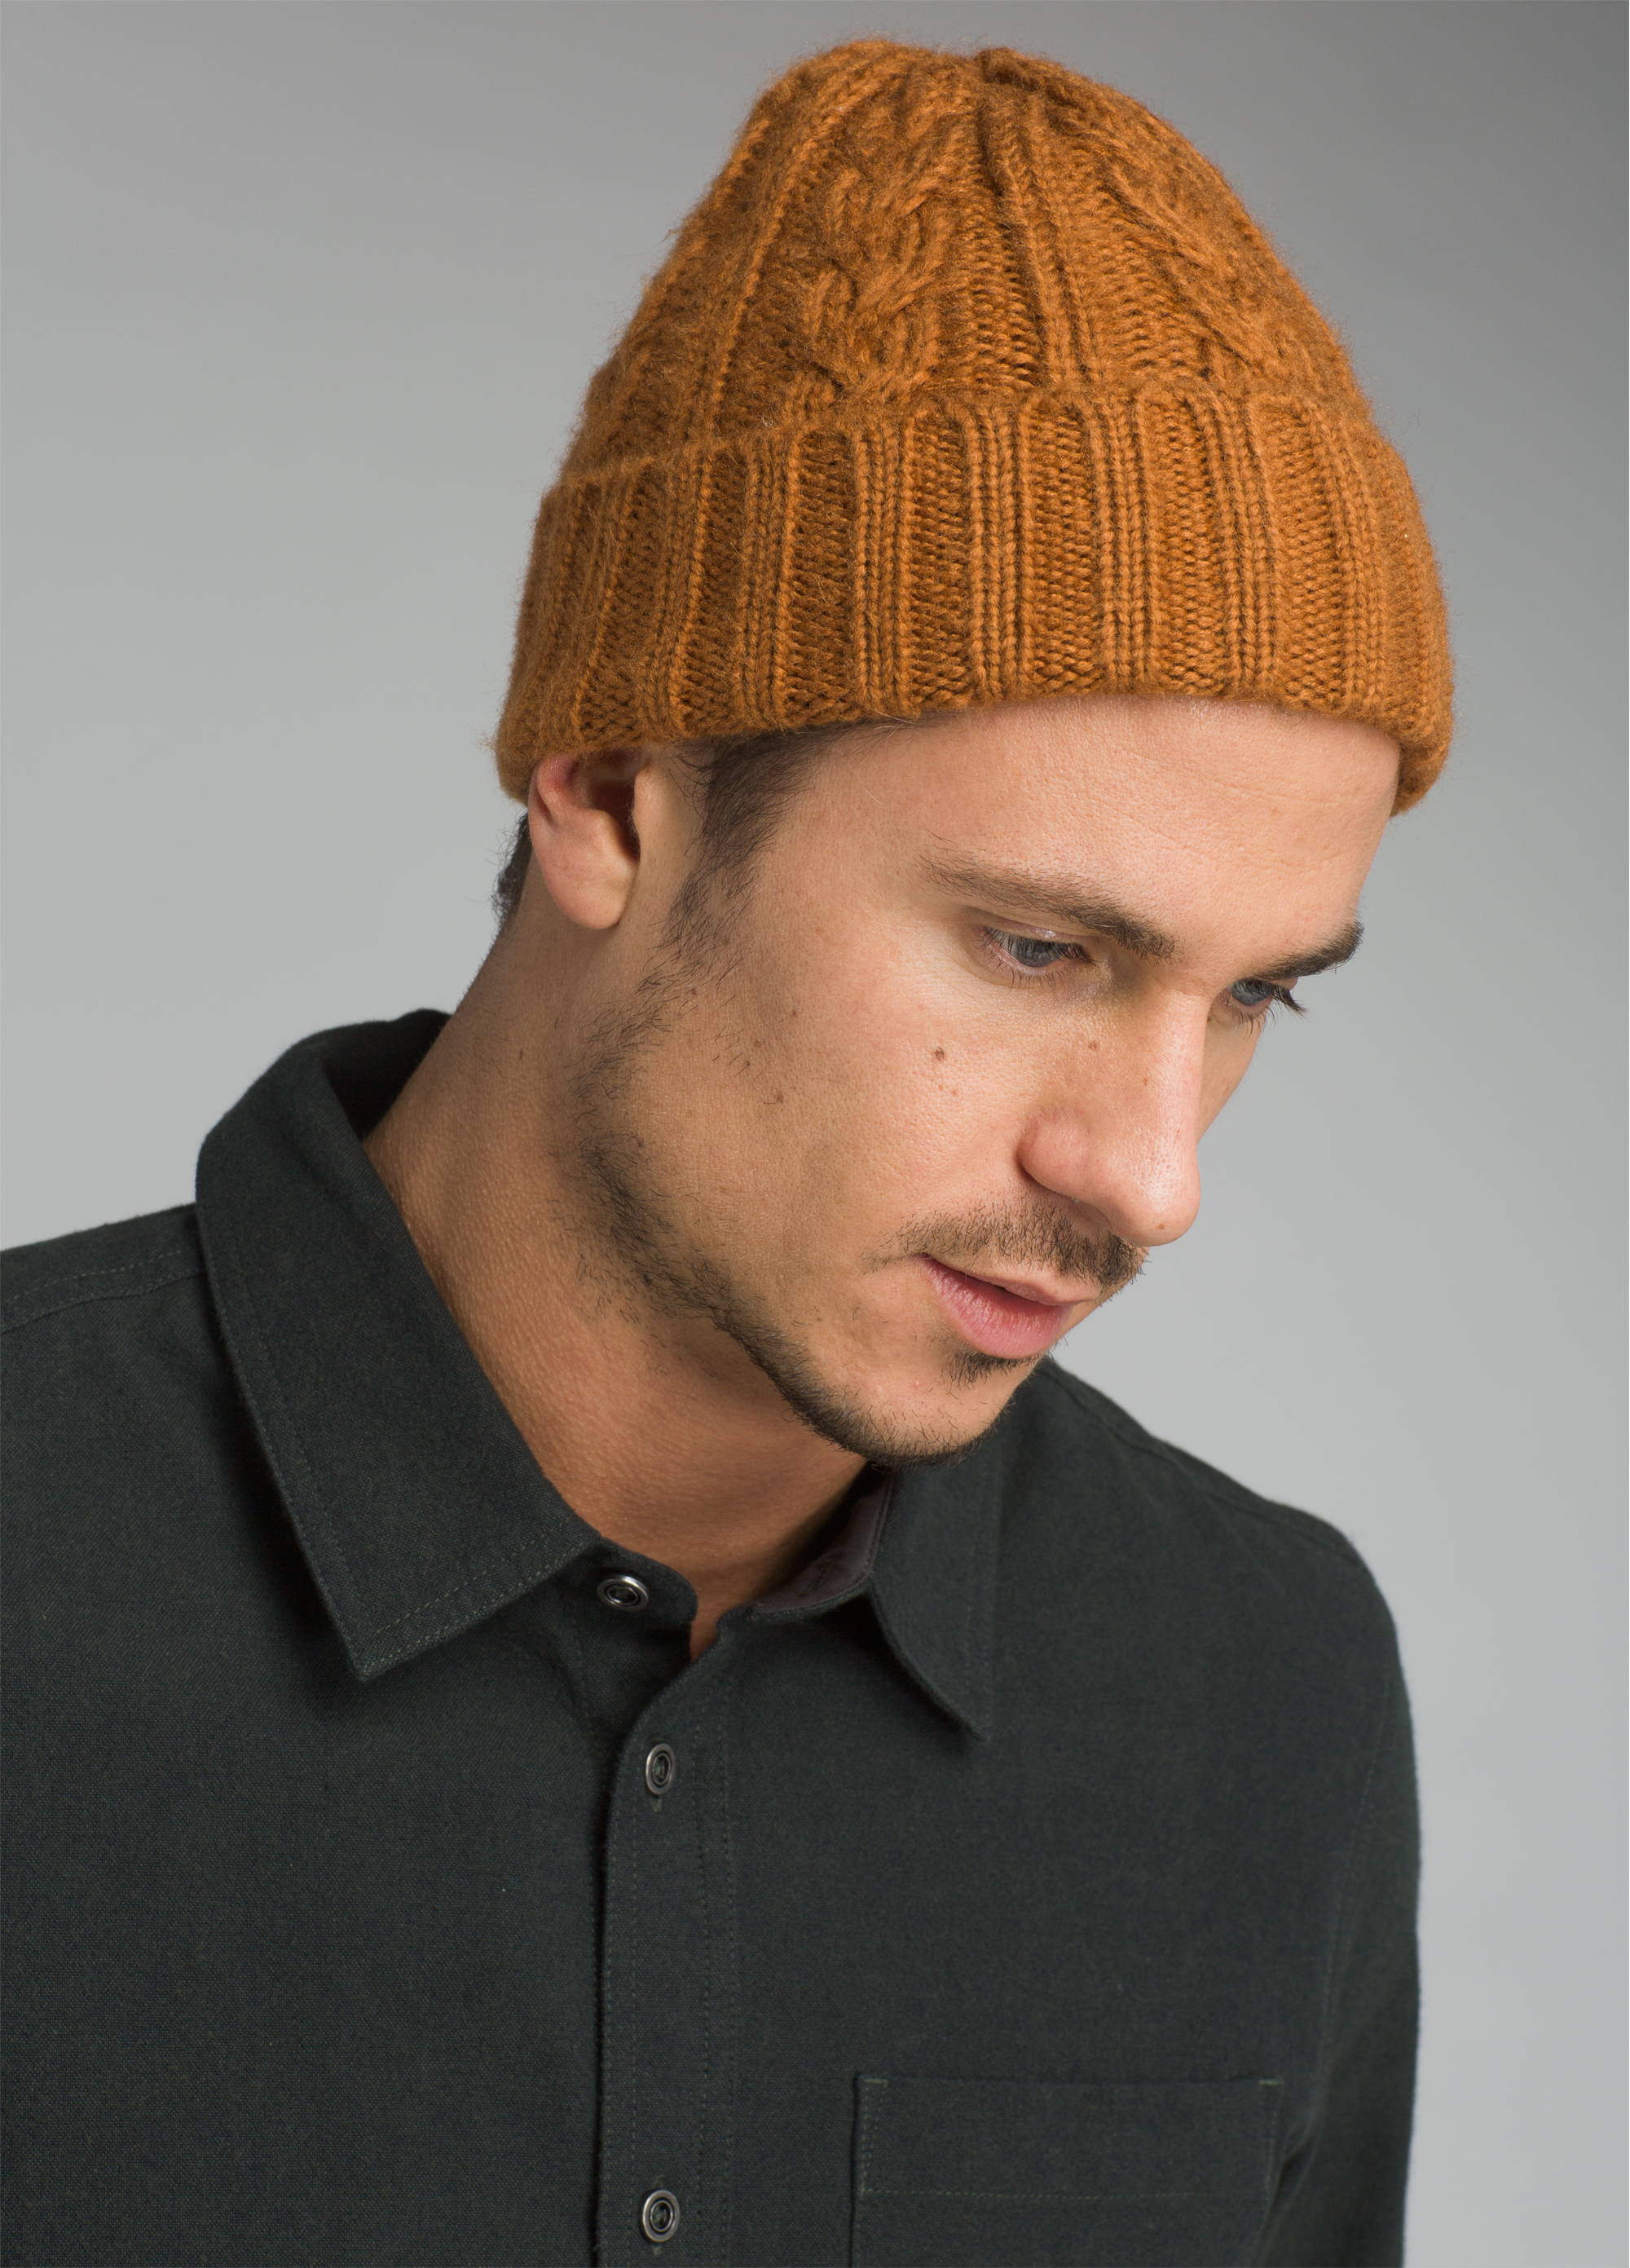 3b57604cf98 prAna Cable Knit Beanie - Men's, Up to 49% Off — CampSaver